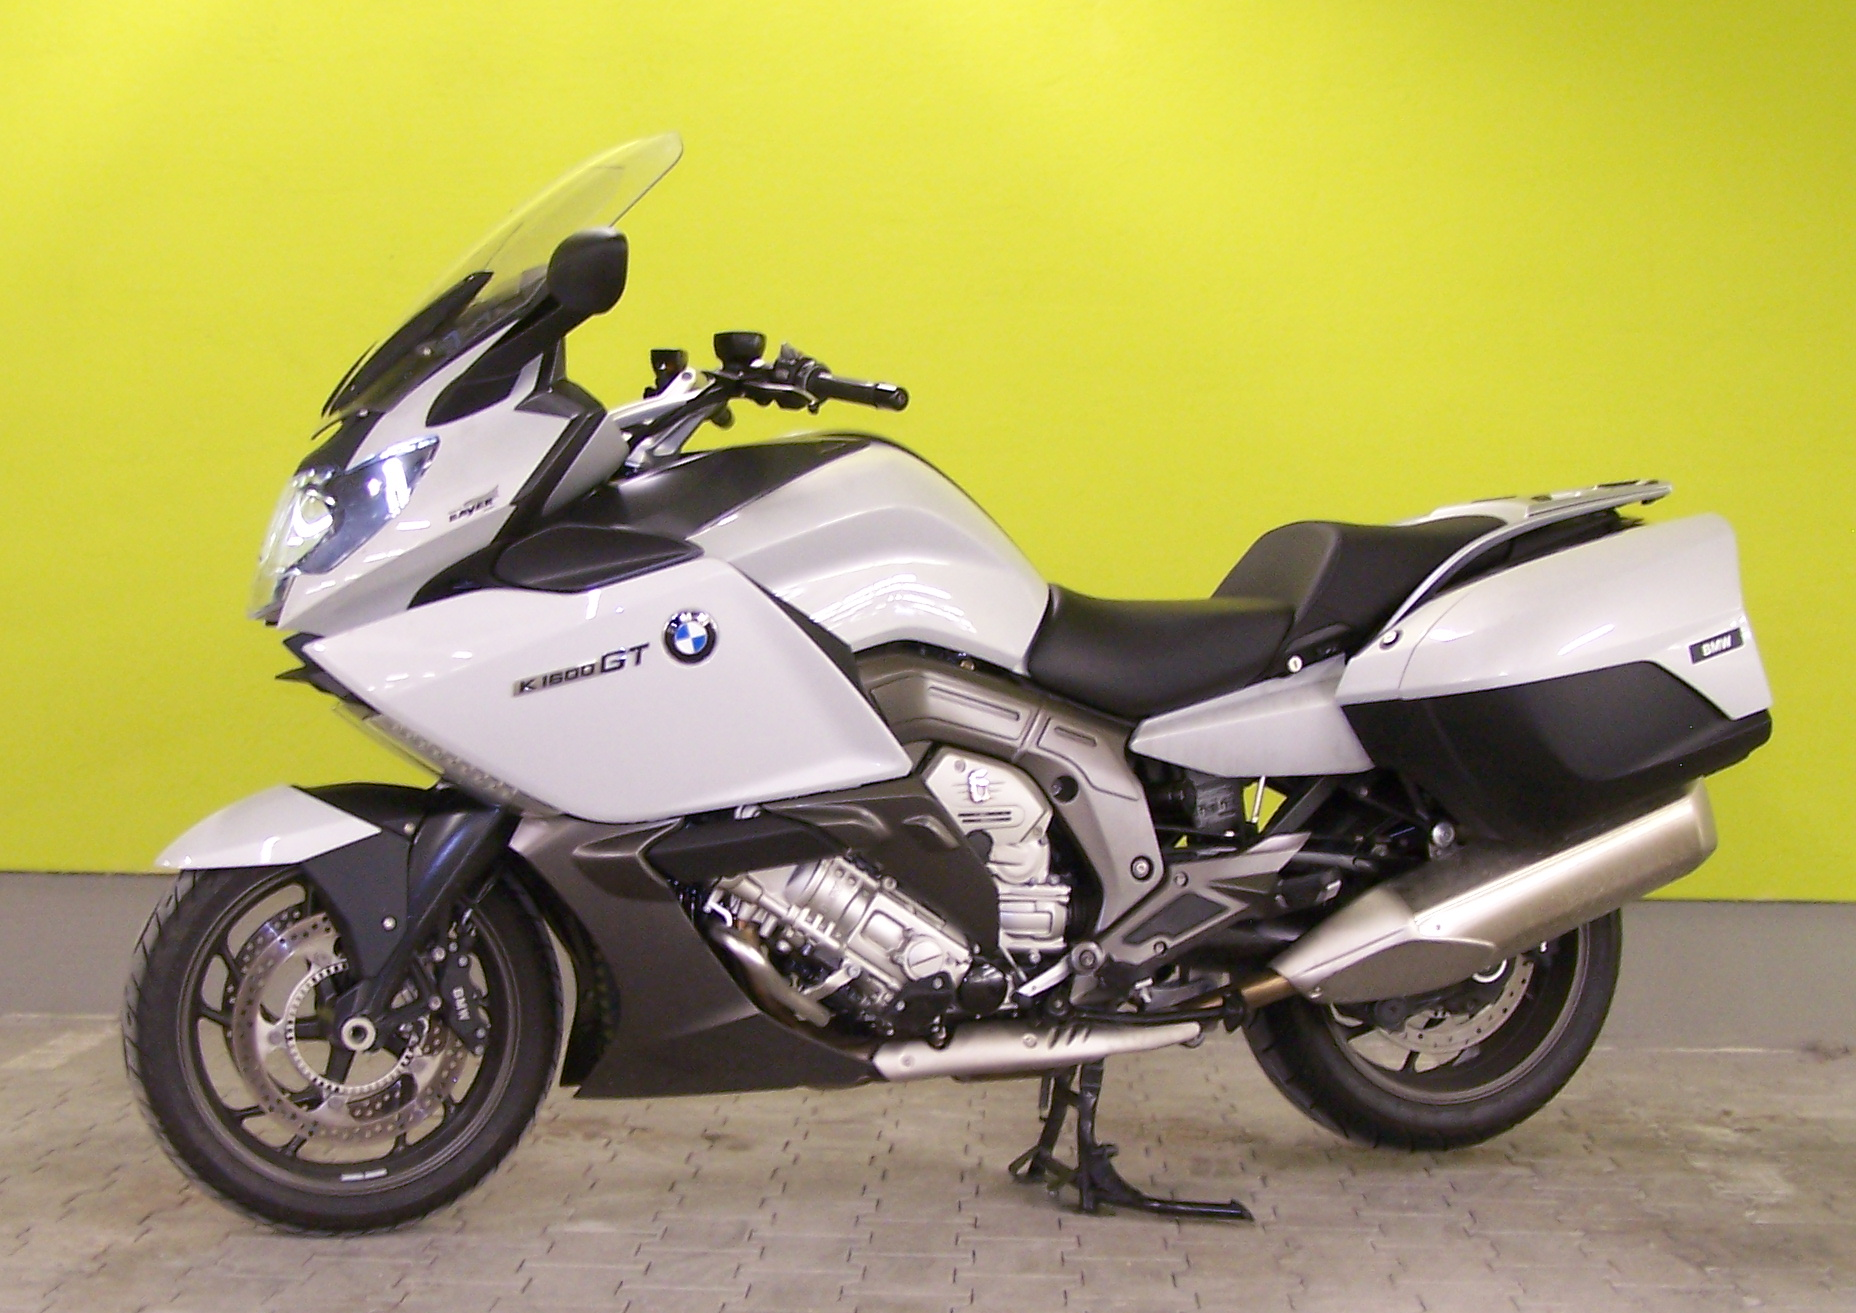 File:BMW K 1600 GT 02.jpg - Wikimedia Commons